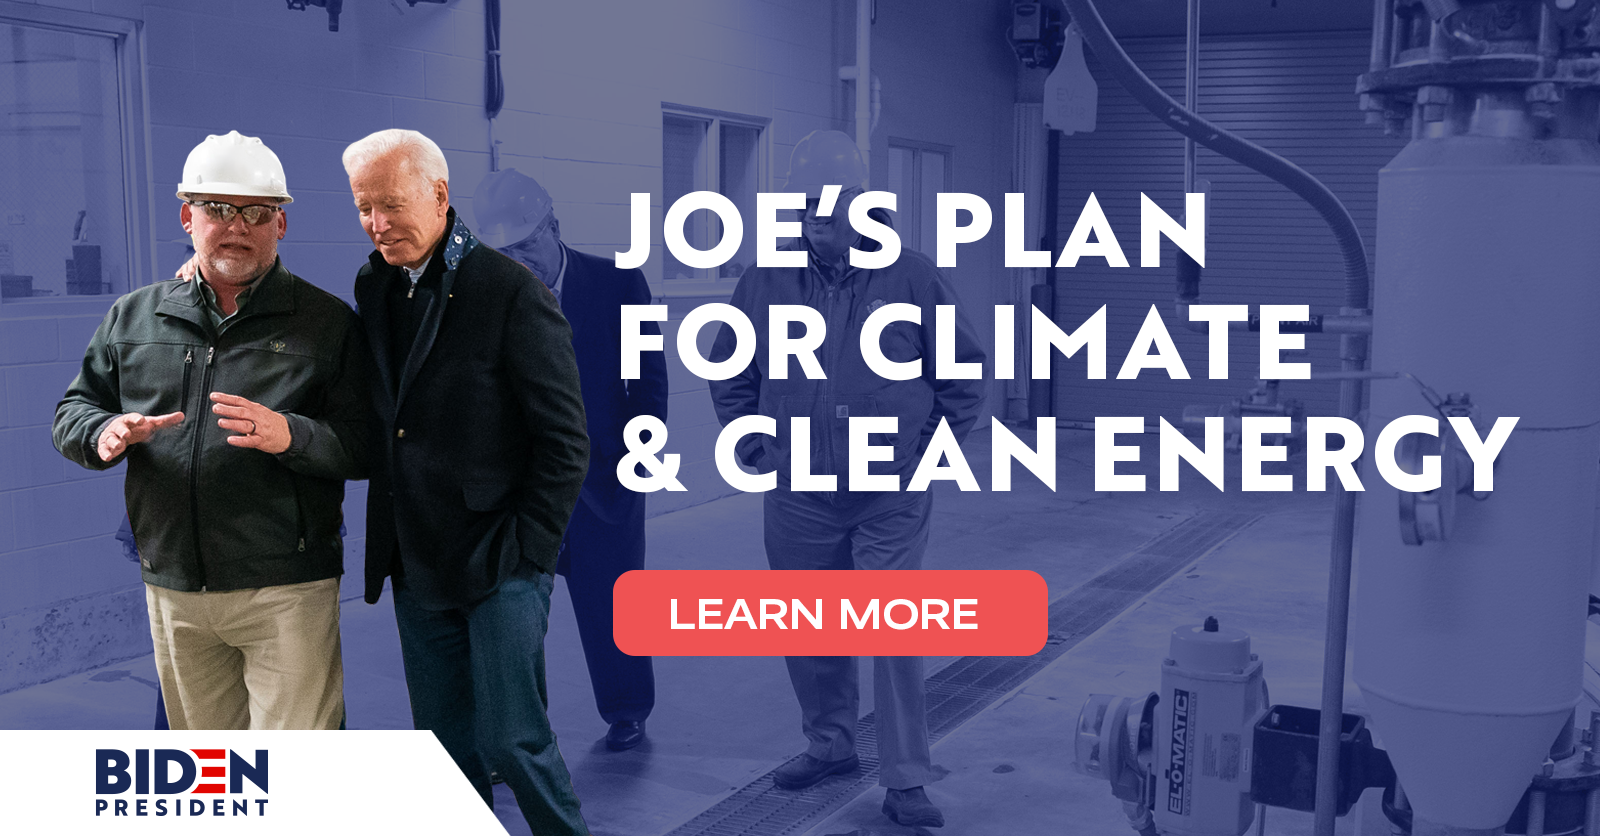 Joe's Plan for a Clean Energy Revolution and Environmental Justice